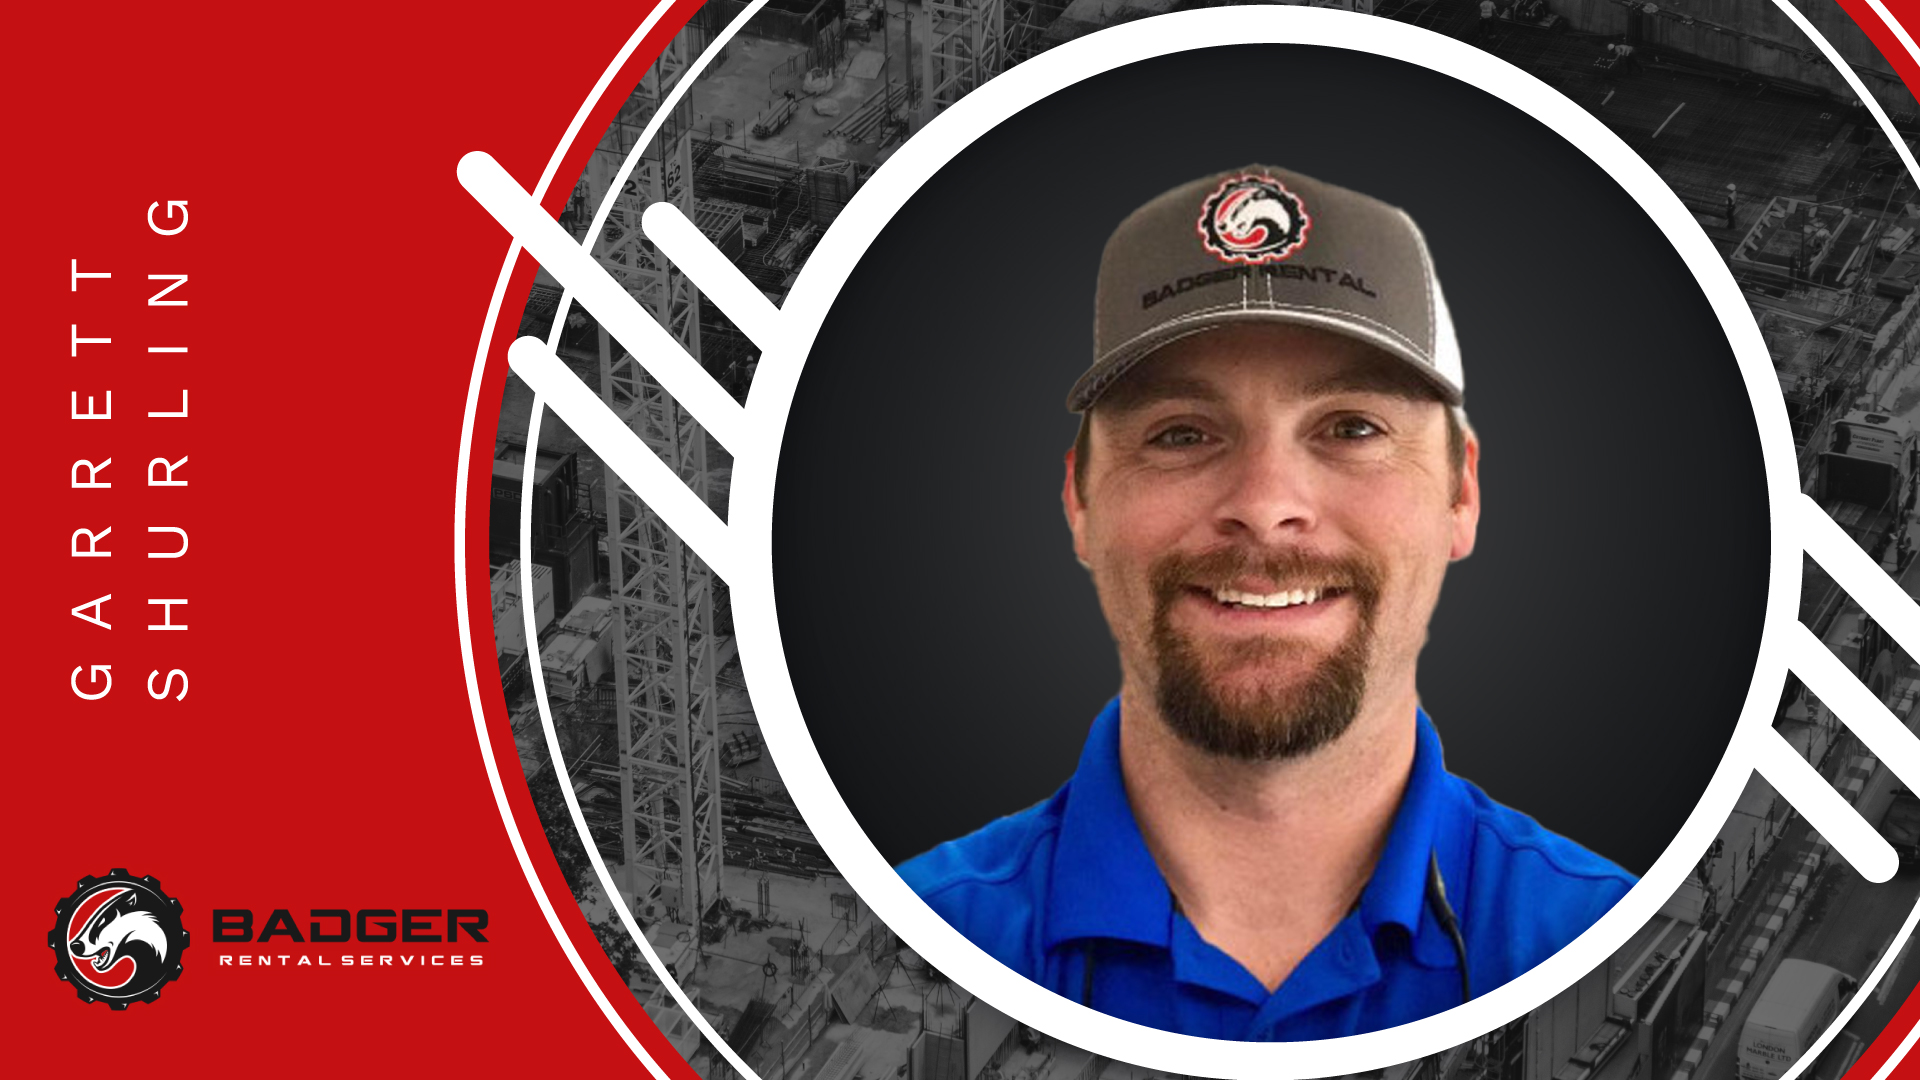 Garrett Shurling is our crime-fighting expert from Badger Rental Services in Georgia.